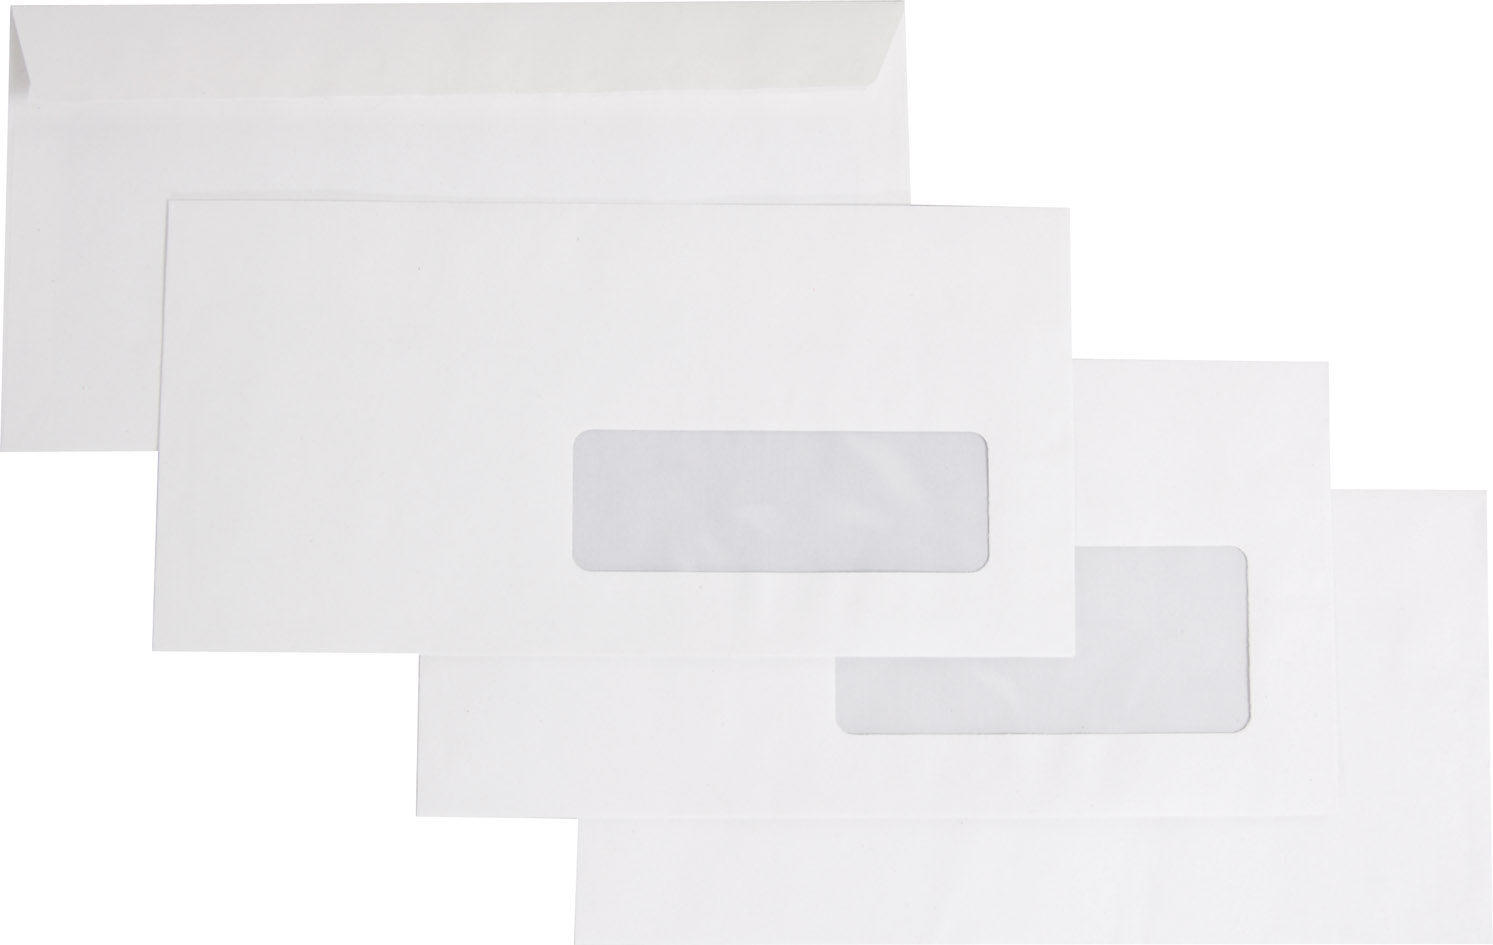 Enveloppes recycl es blanches dl fen tre 45 100forever for Enveloppes a fenetre